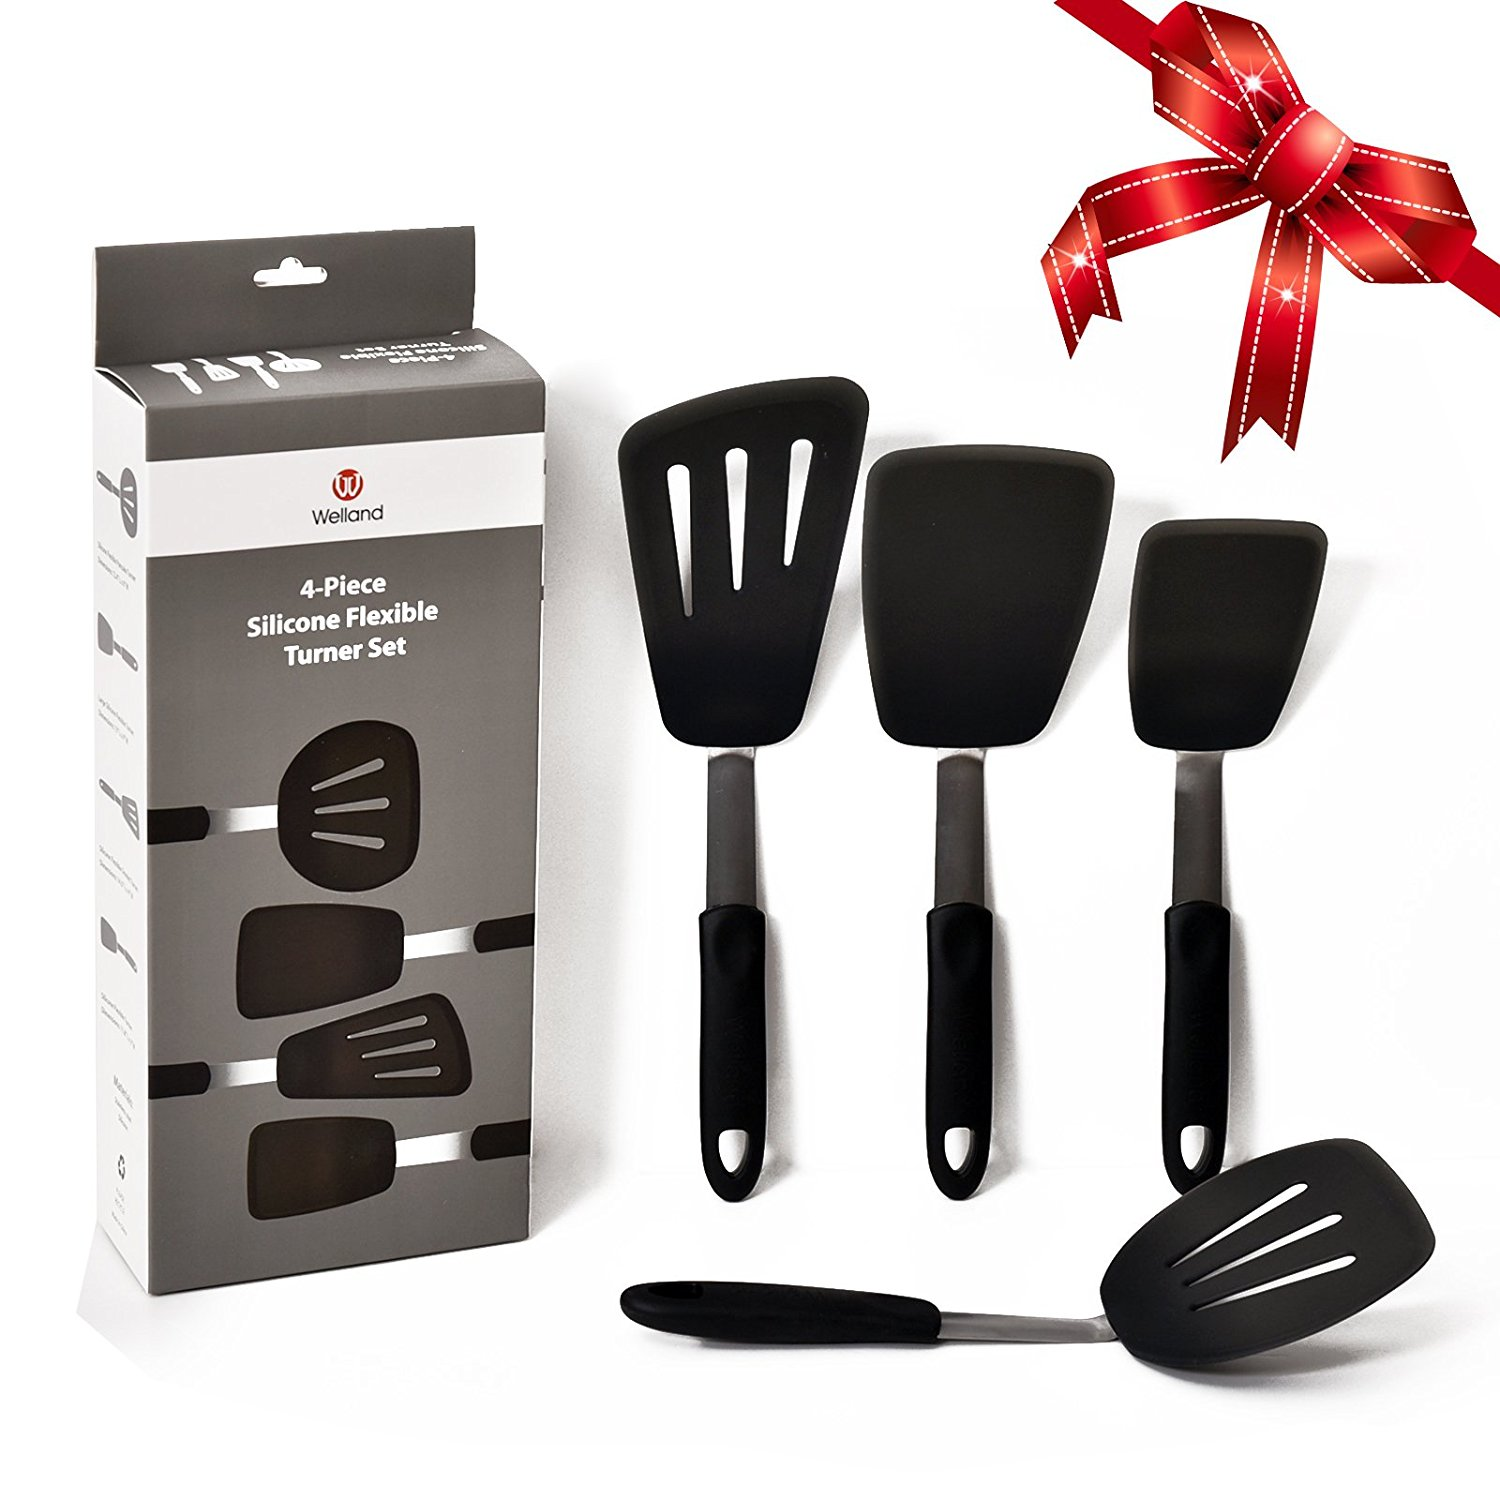 WELLAND 4-Piece High Heat Resistant Silicone & Stainless Steel Spatula Turner Set